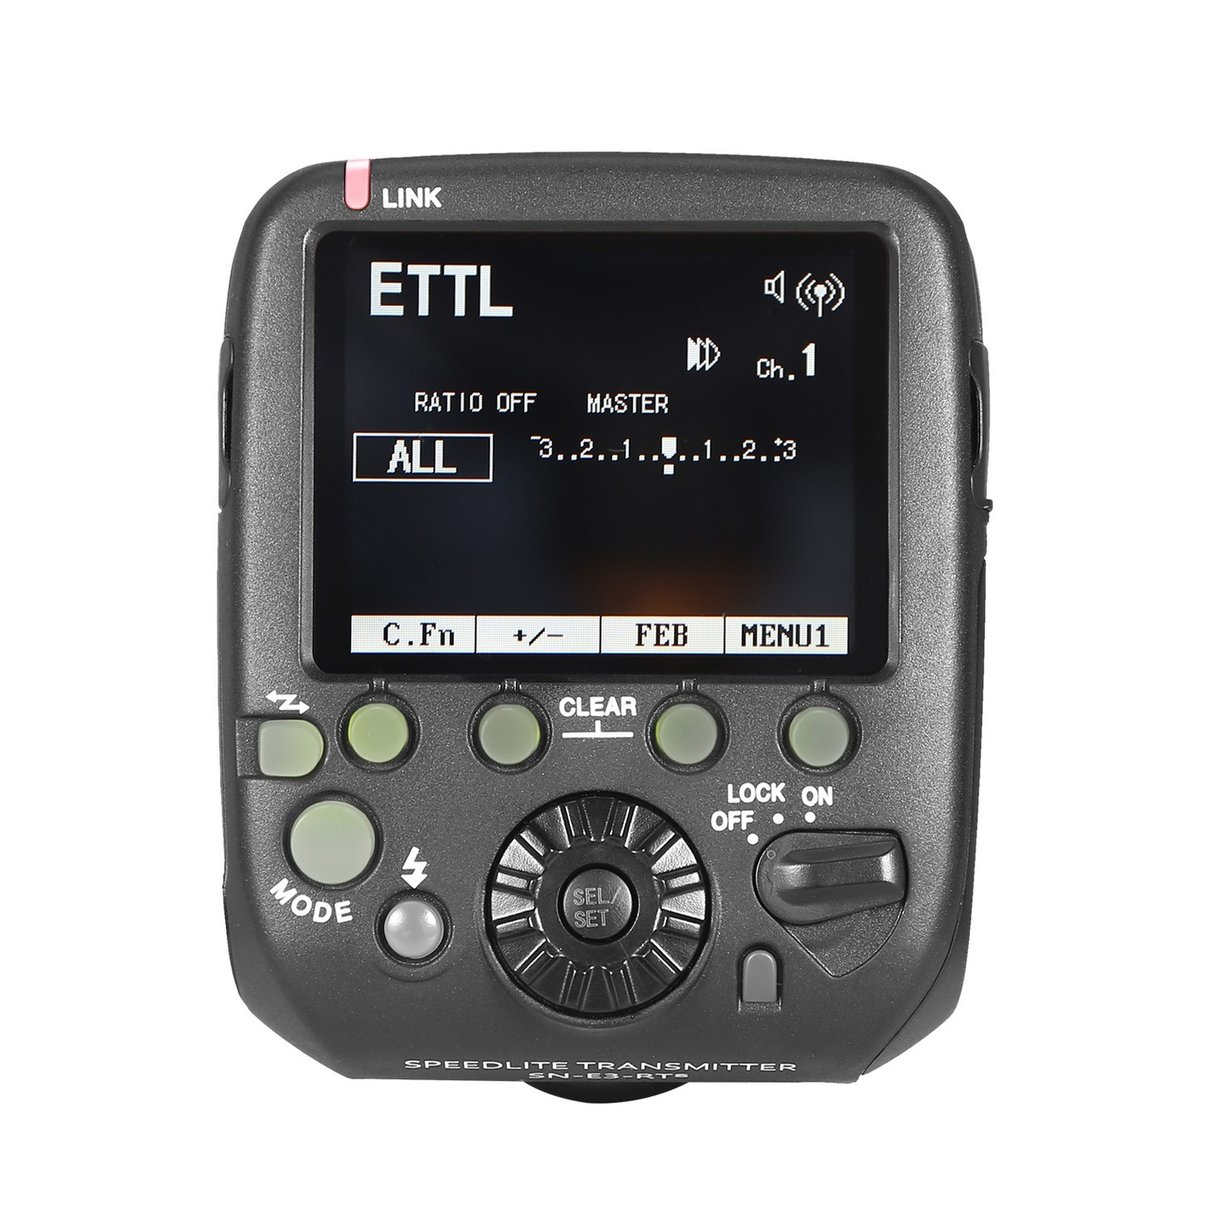 Shanny SN-E3-RTs Transmitter Flash Trigger for Canon 600EX-RT Yongnuo YN600EX-RT AS Yongnuo YN-E3-RT yn e3 rt ttl radio trigger speedlite transmitter as st e3 rt for canon 600ex rt new arrival